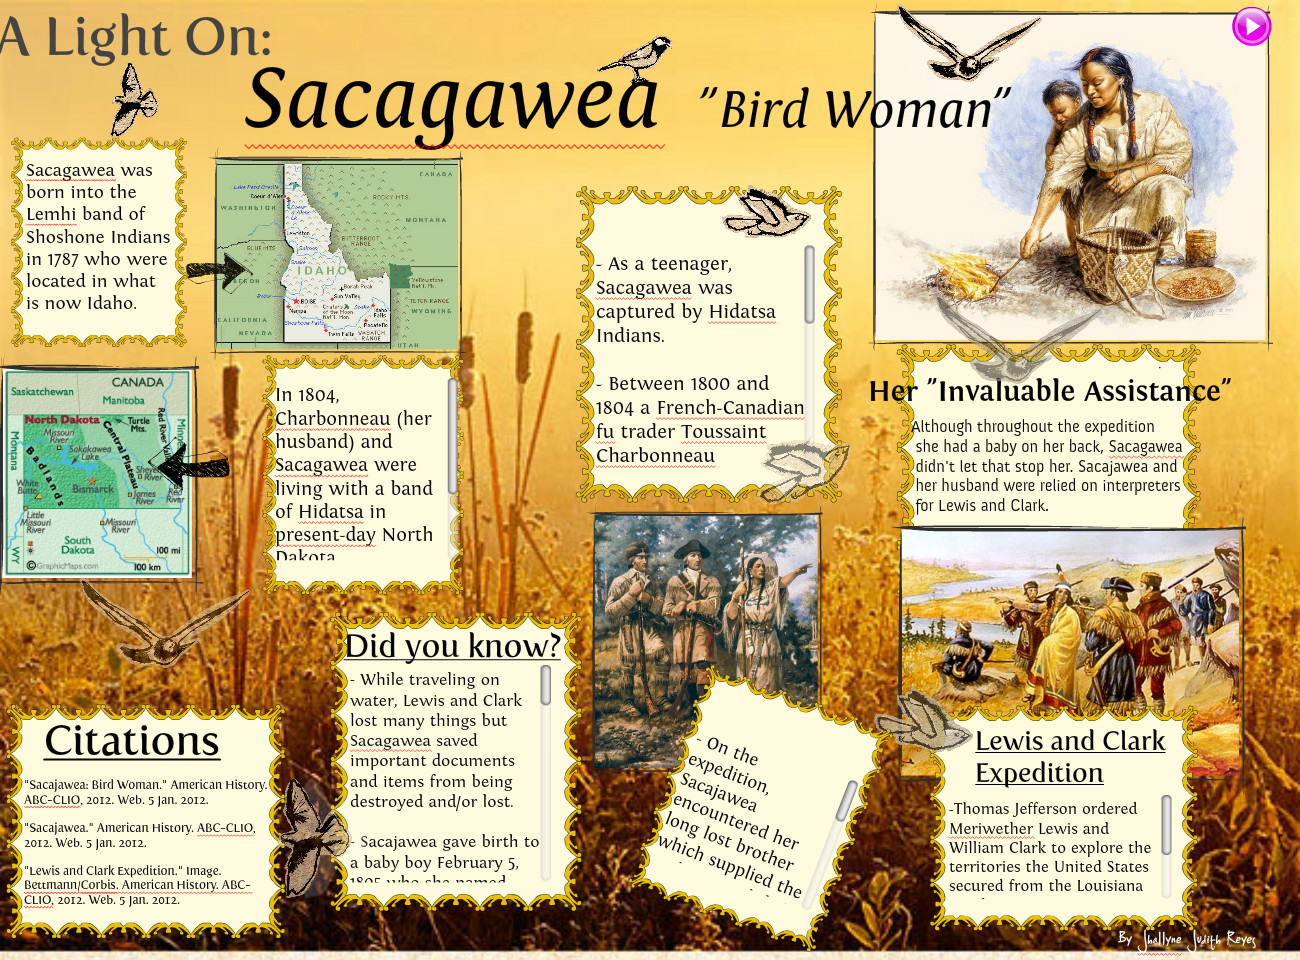 famous quotes by sacagawea quotesgram